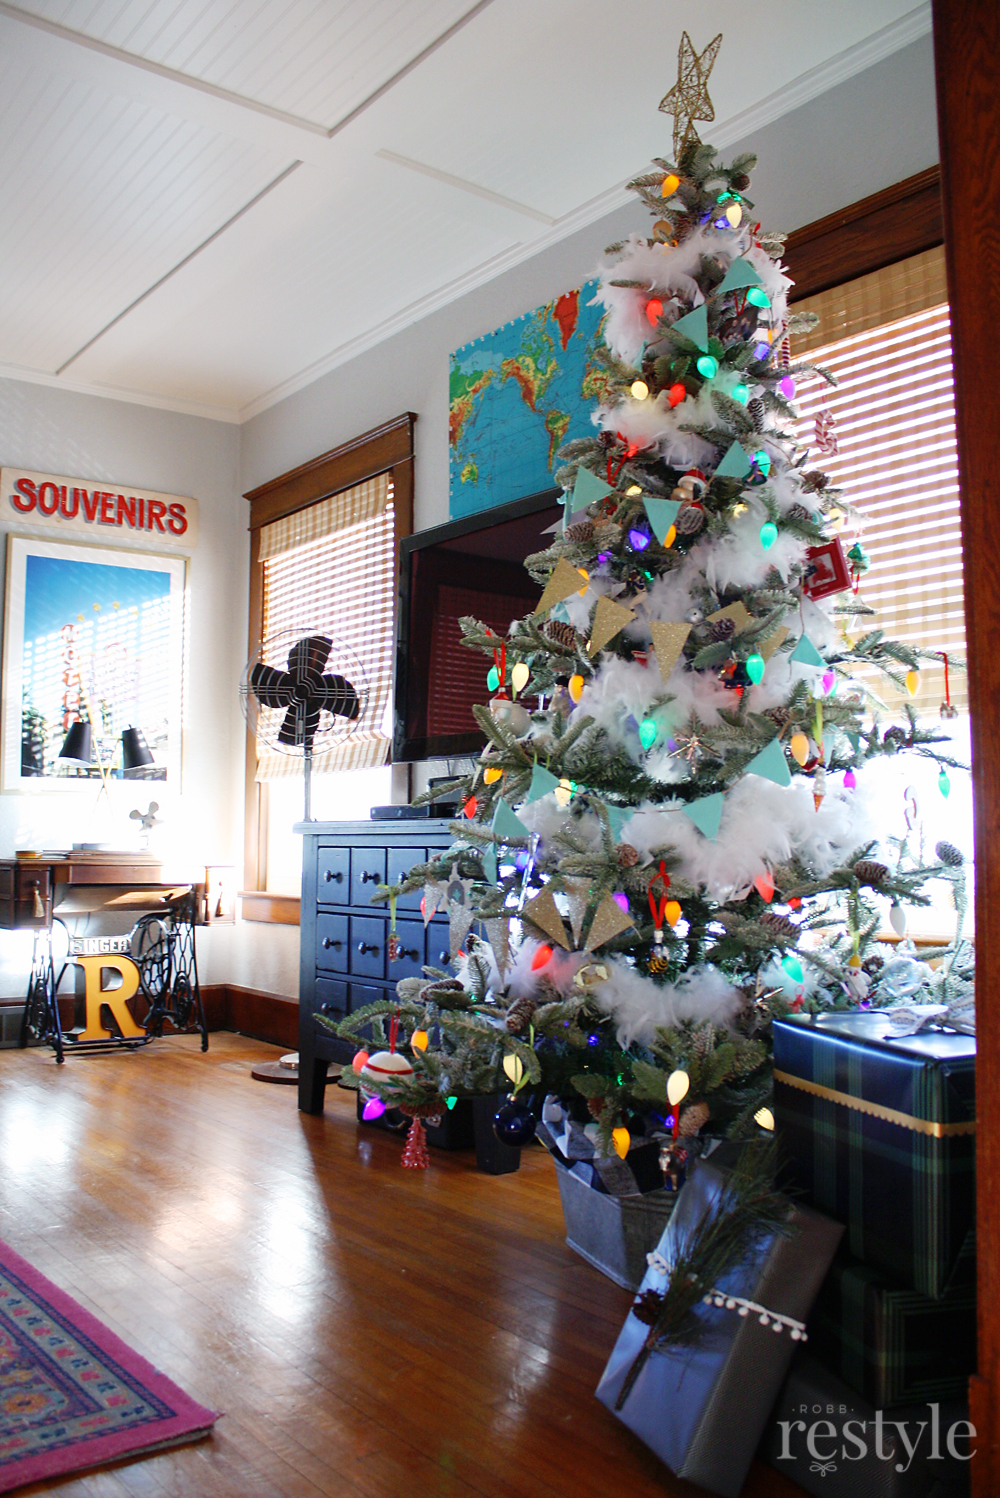 Eclectic Christmas Home Tour - love the Christmas tree with colorful vintage string lights